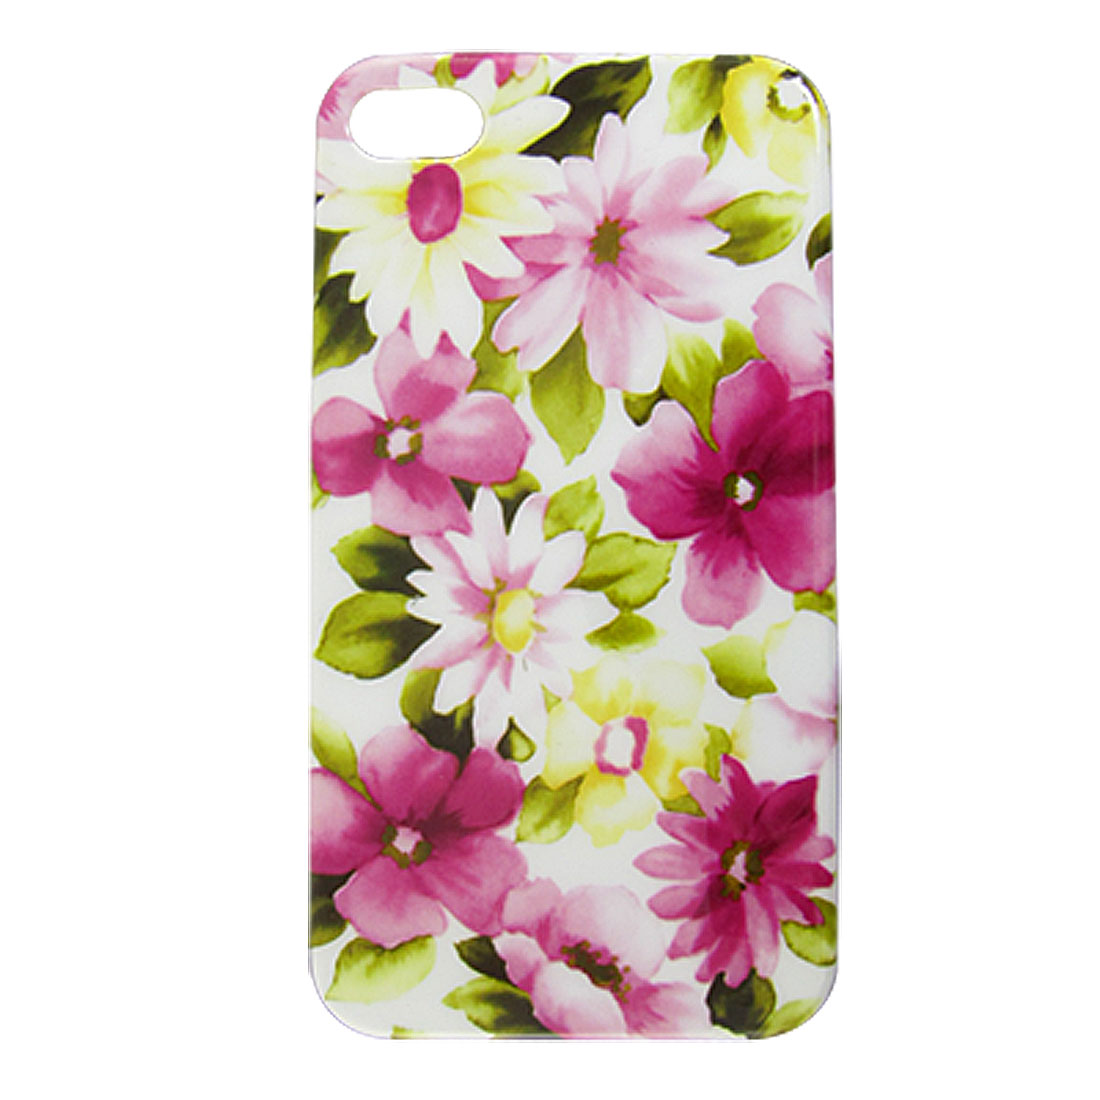 Hard Plastic IMD Pink Flowery Print Back Case for iPhone 4 4G 4S